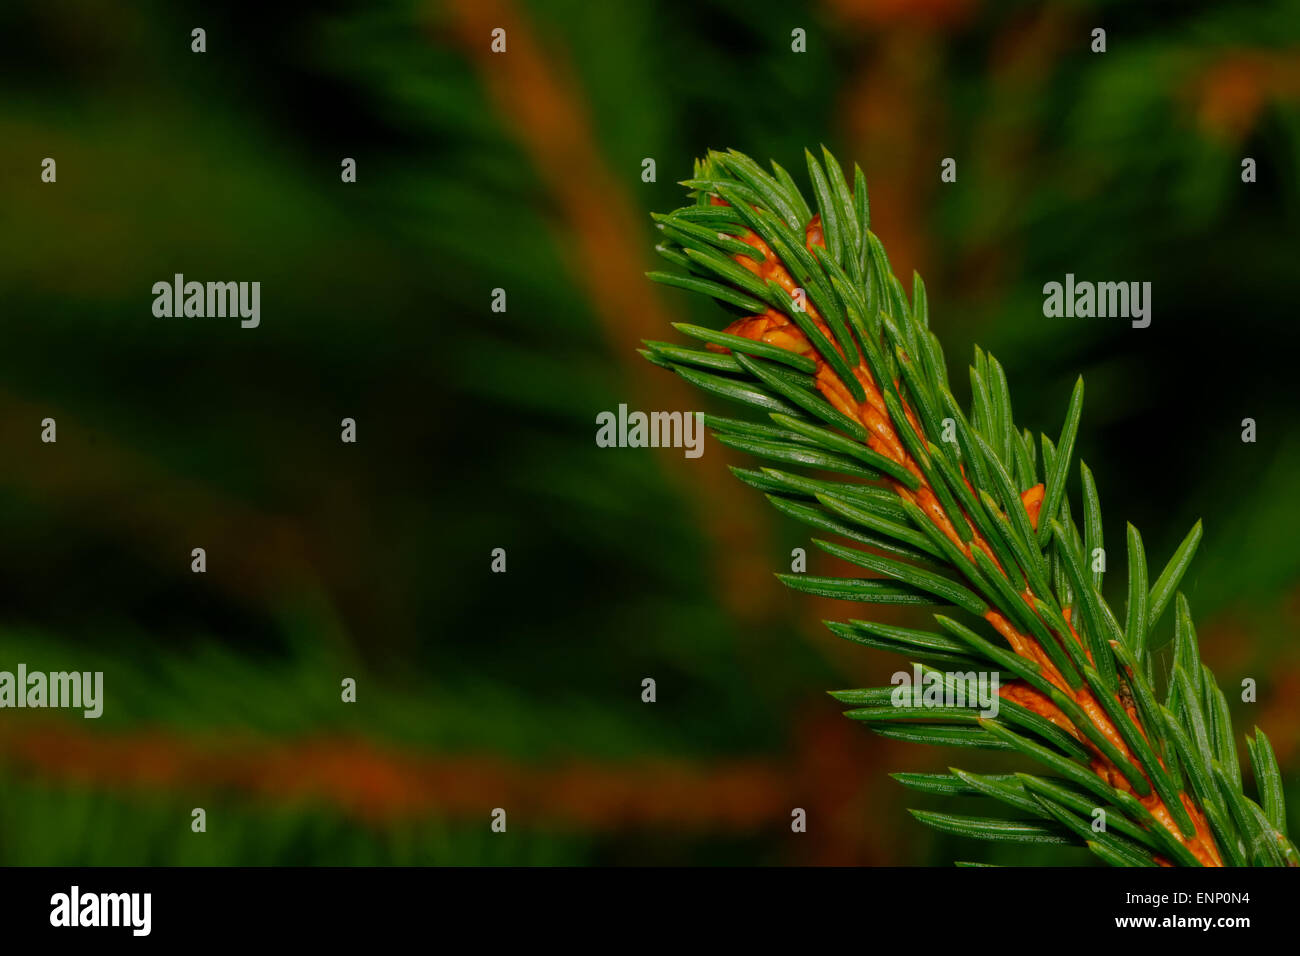 Coniferous twig with nice blurred twigs in the background. - Stock Image